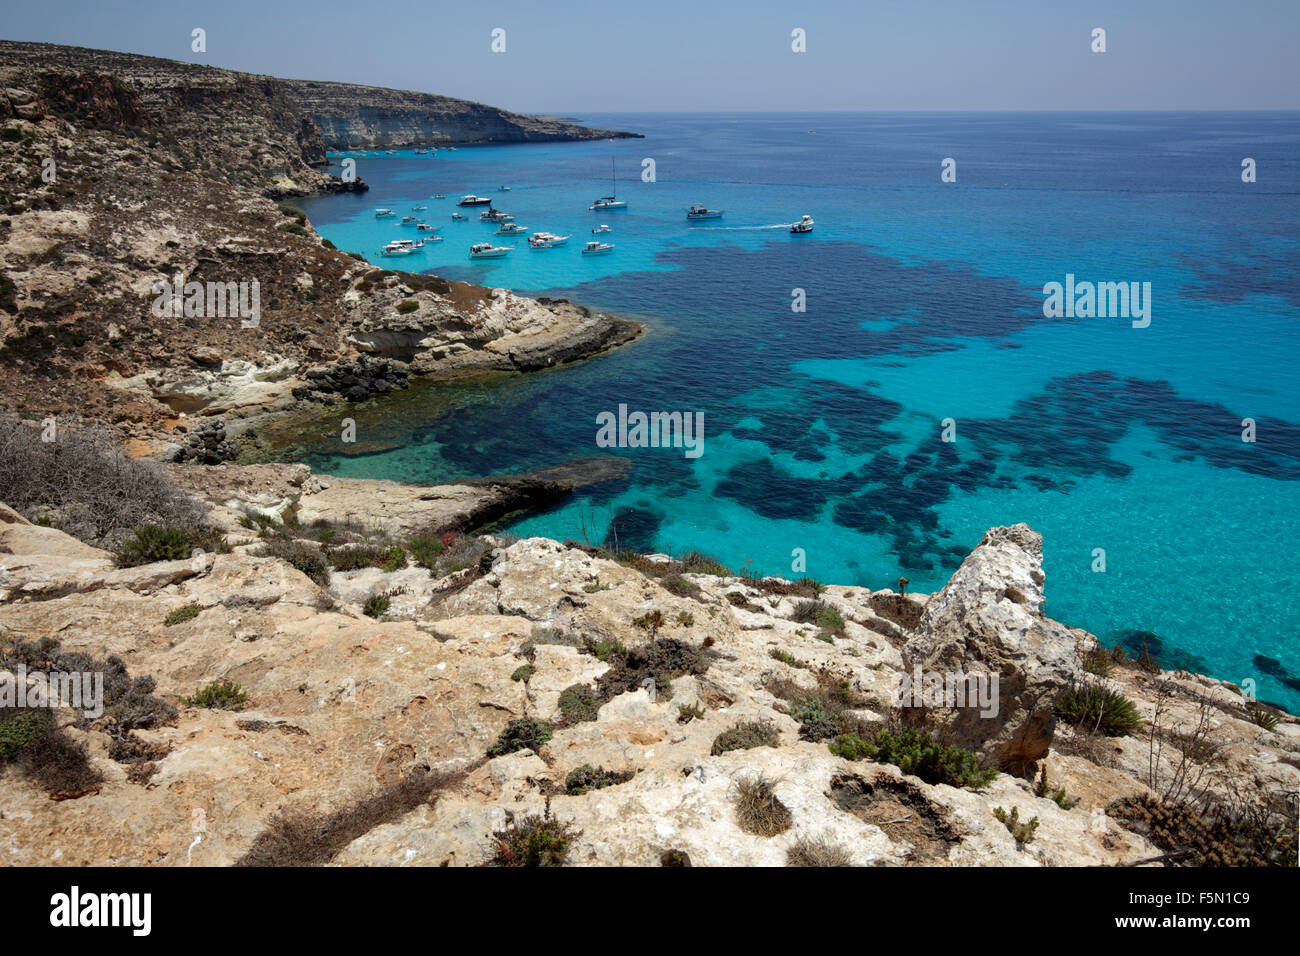 Tabaccara bay in Lampedusa, Sicily, Italy - Stock Image